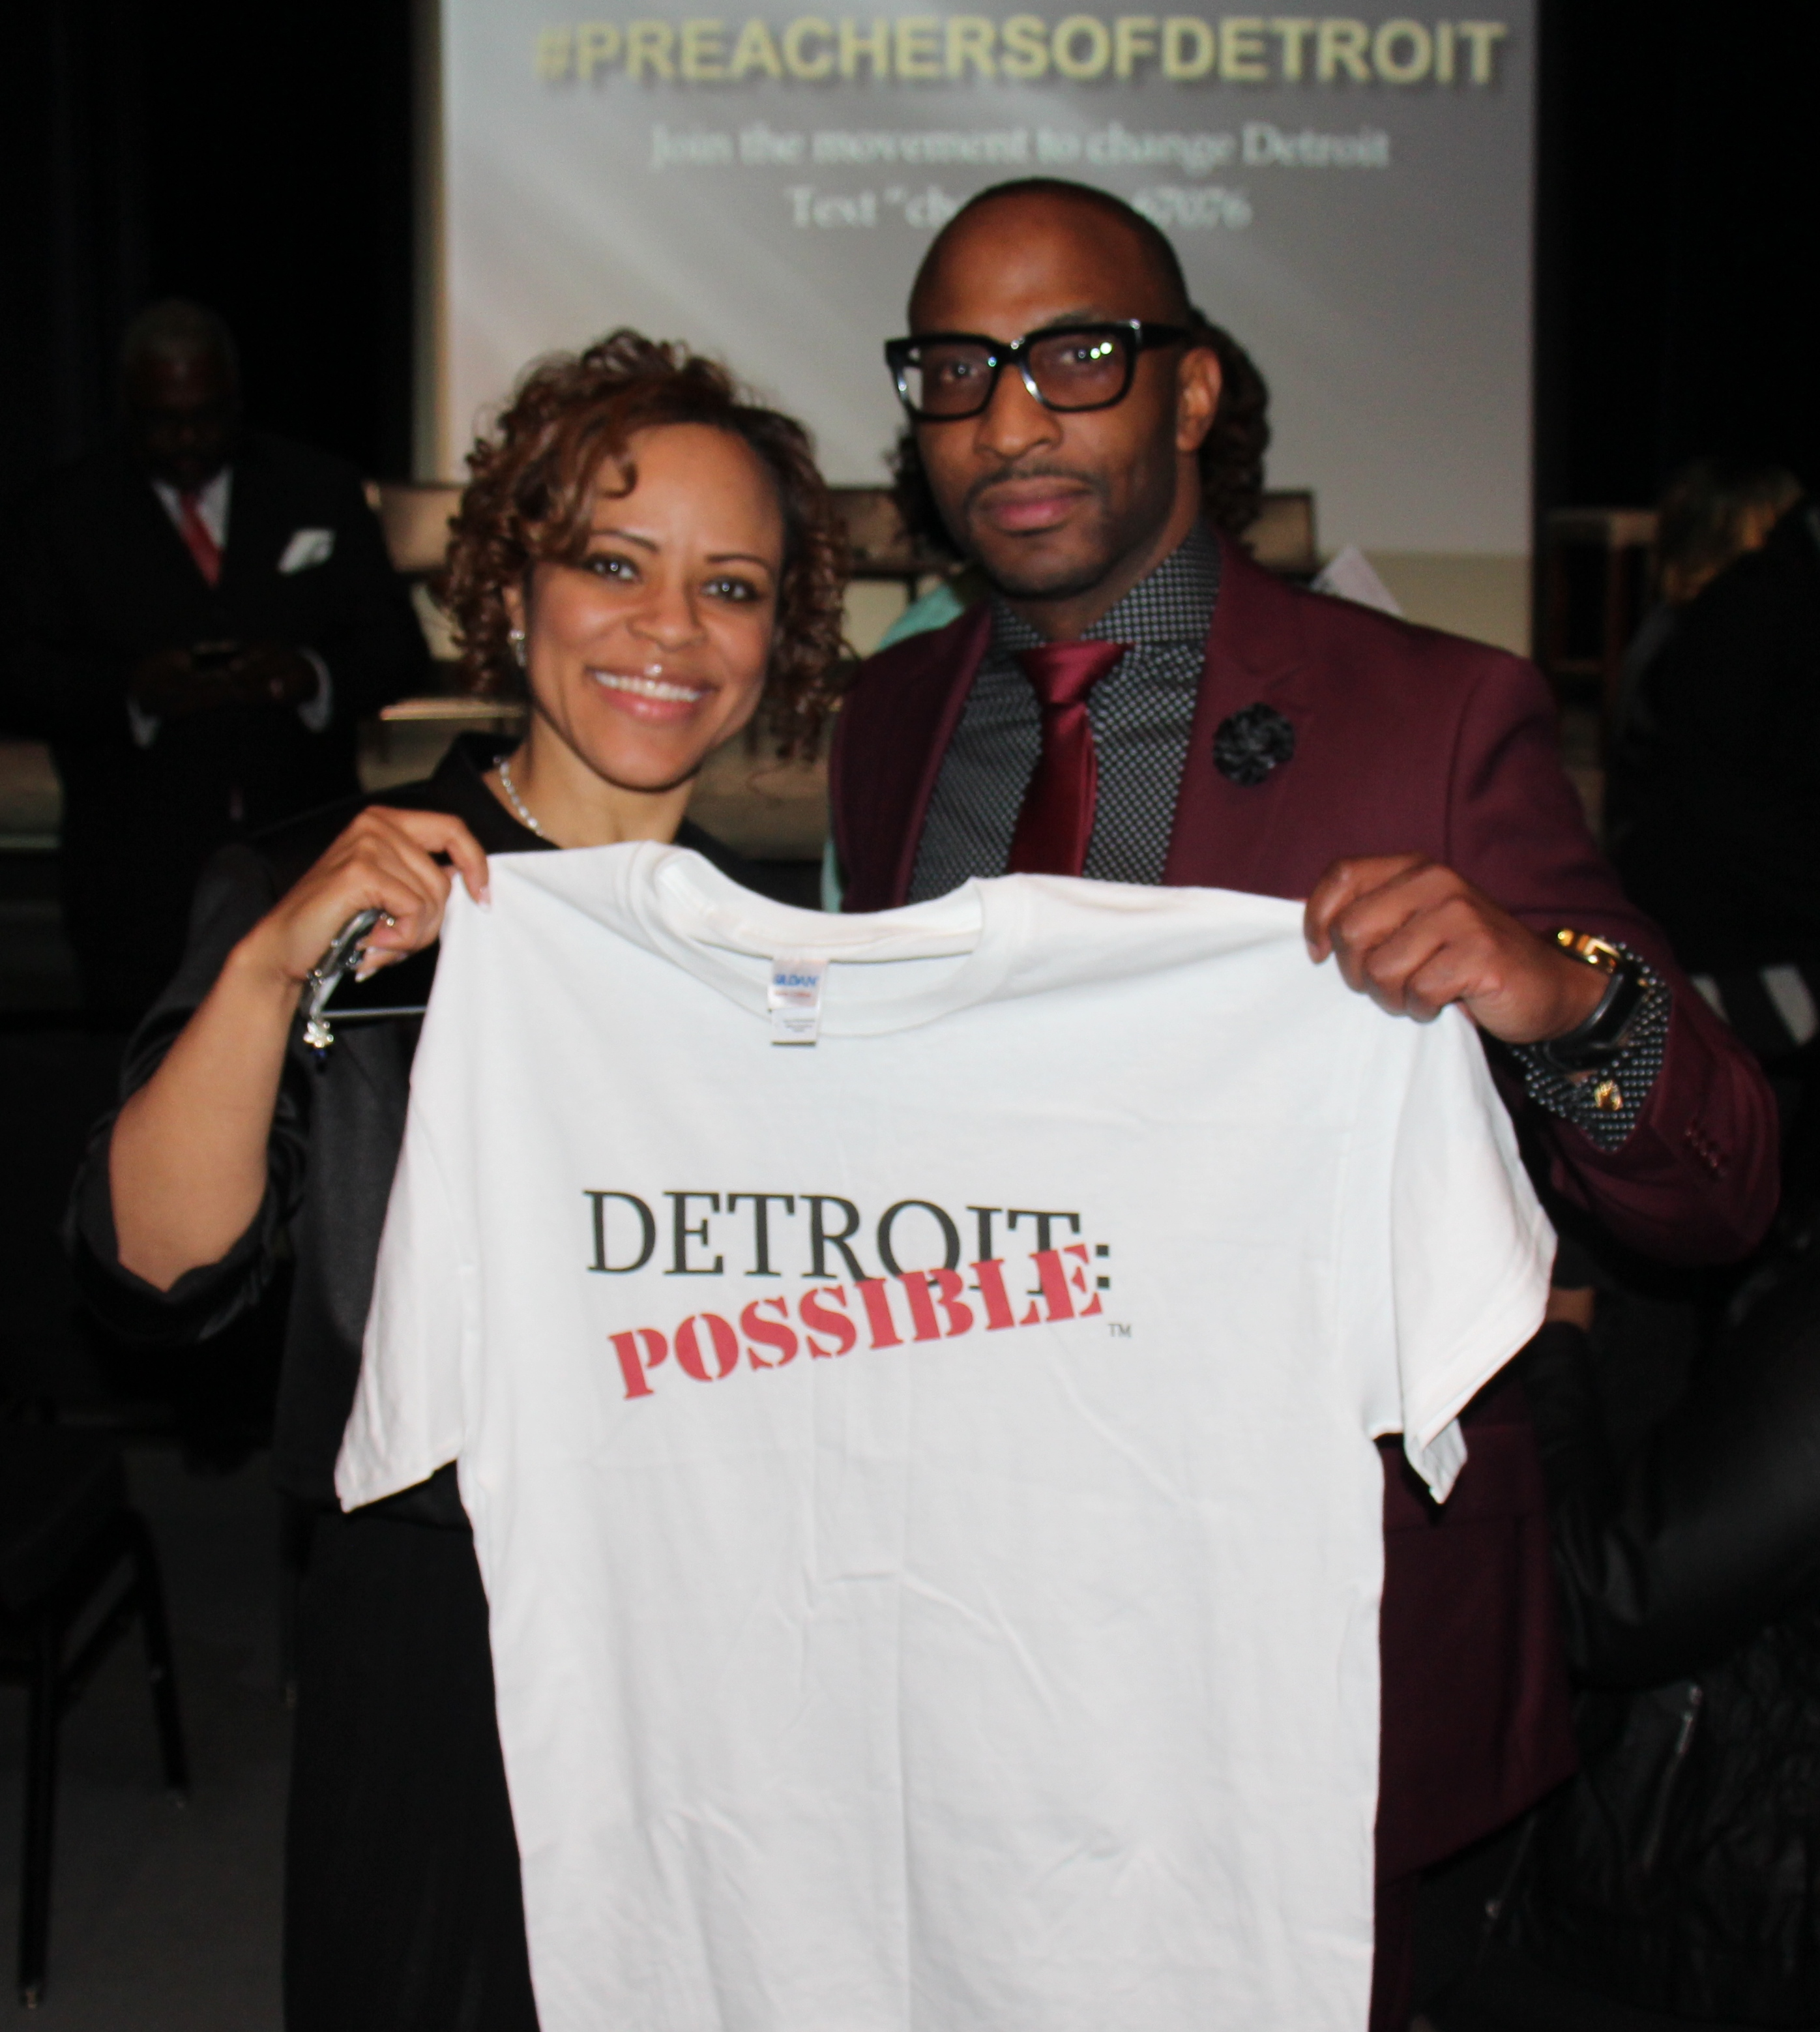 Pastor Bullock is #DetroitPossible